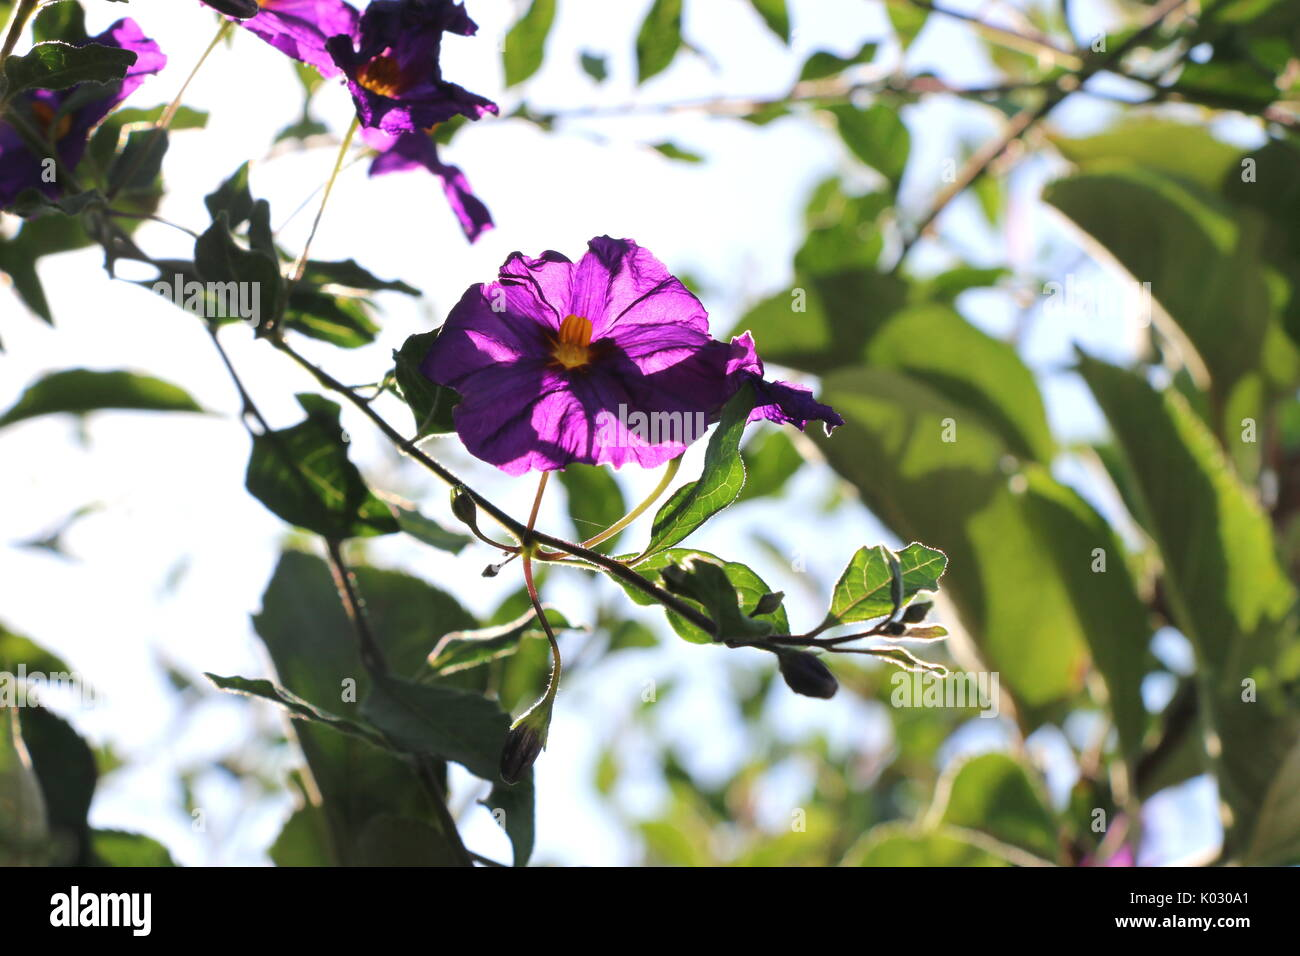 Delicate purple morning glory flower, backlit against the sky. Stock Photo